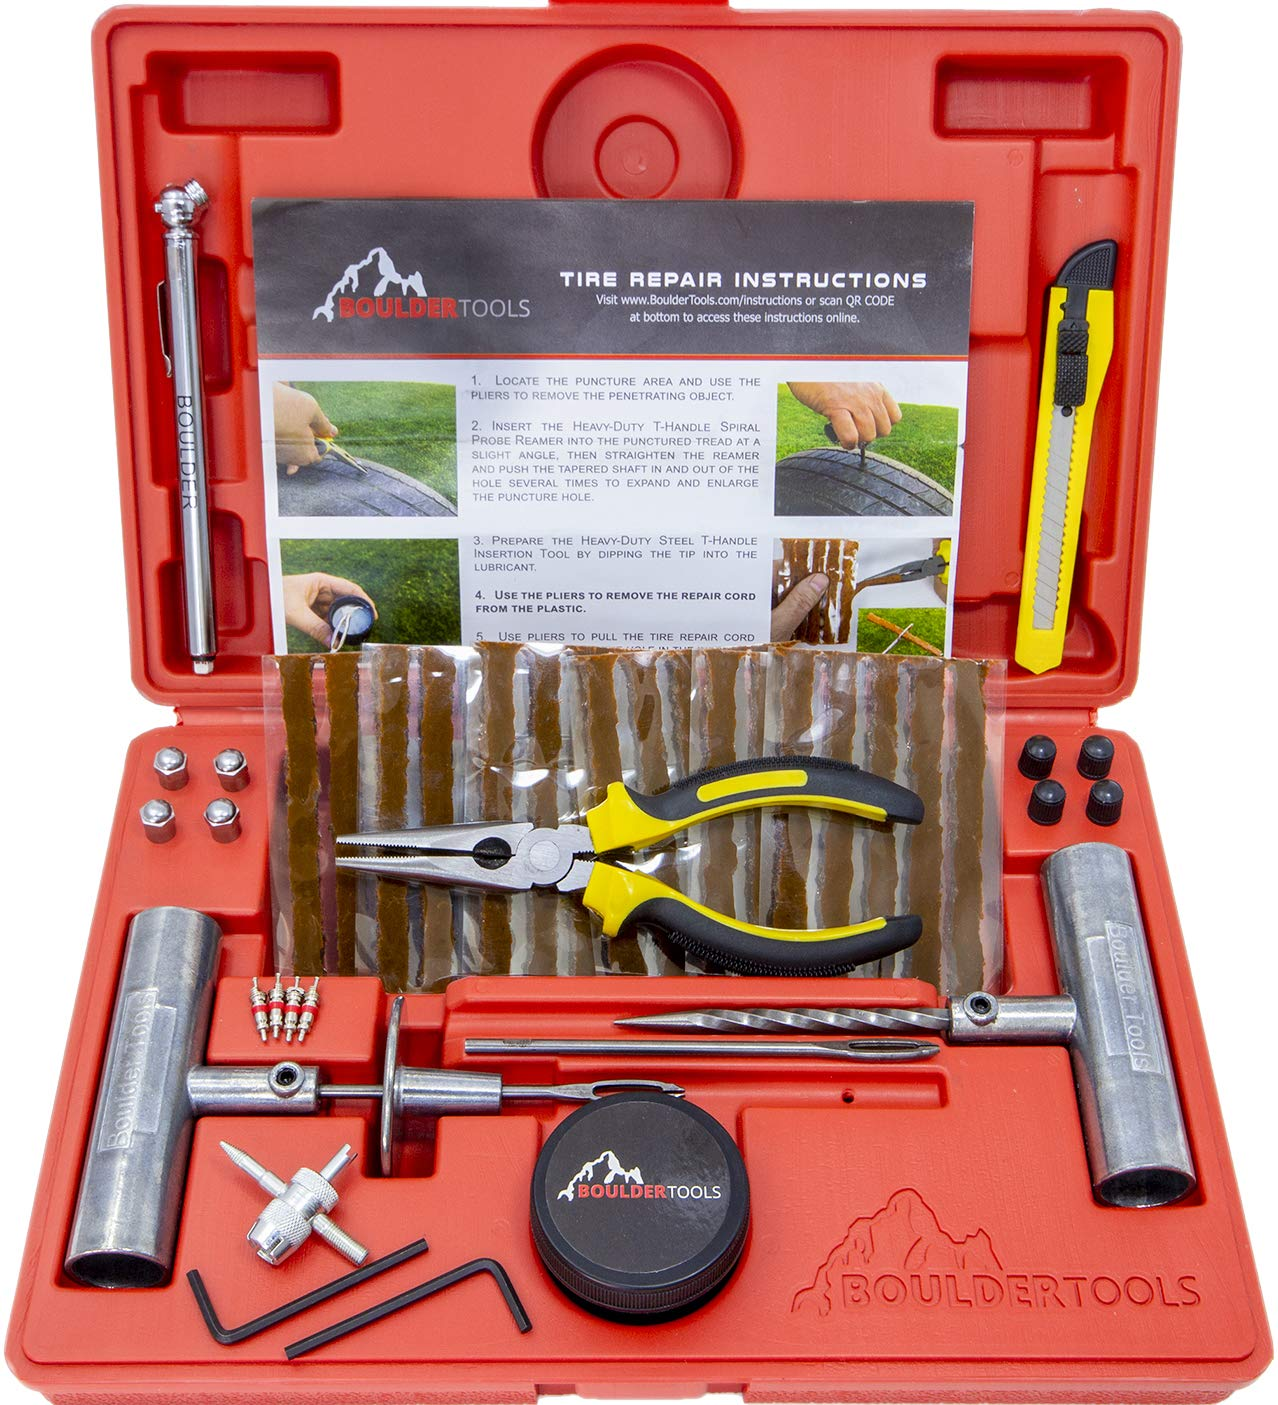 Boulder Tools - Heavy Duty Tire Repair Kit for Car, Truck, RV, SUV, ATV, Motorcycle, Tractor, Trailer. Flat Tire Puncture Repair Kit